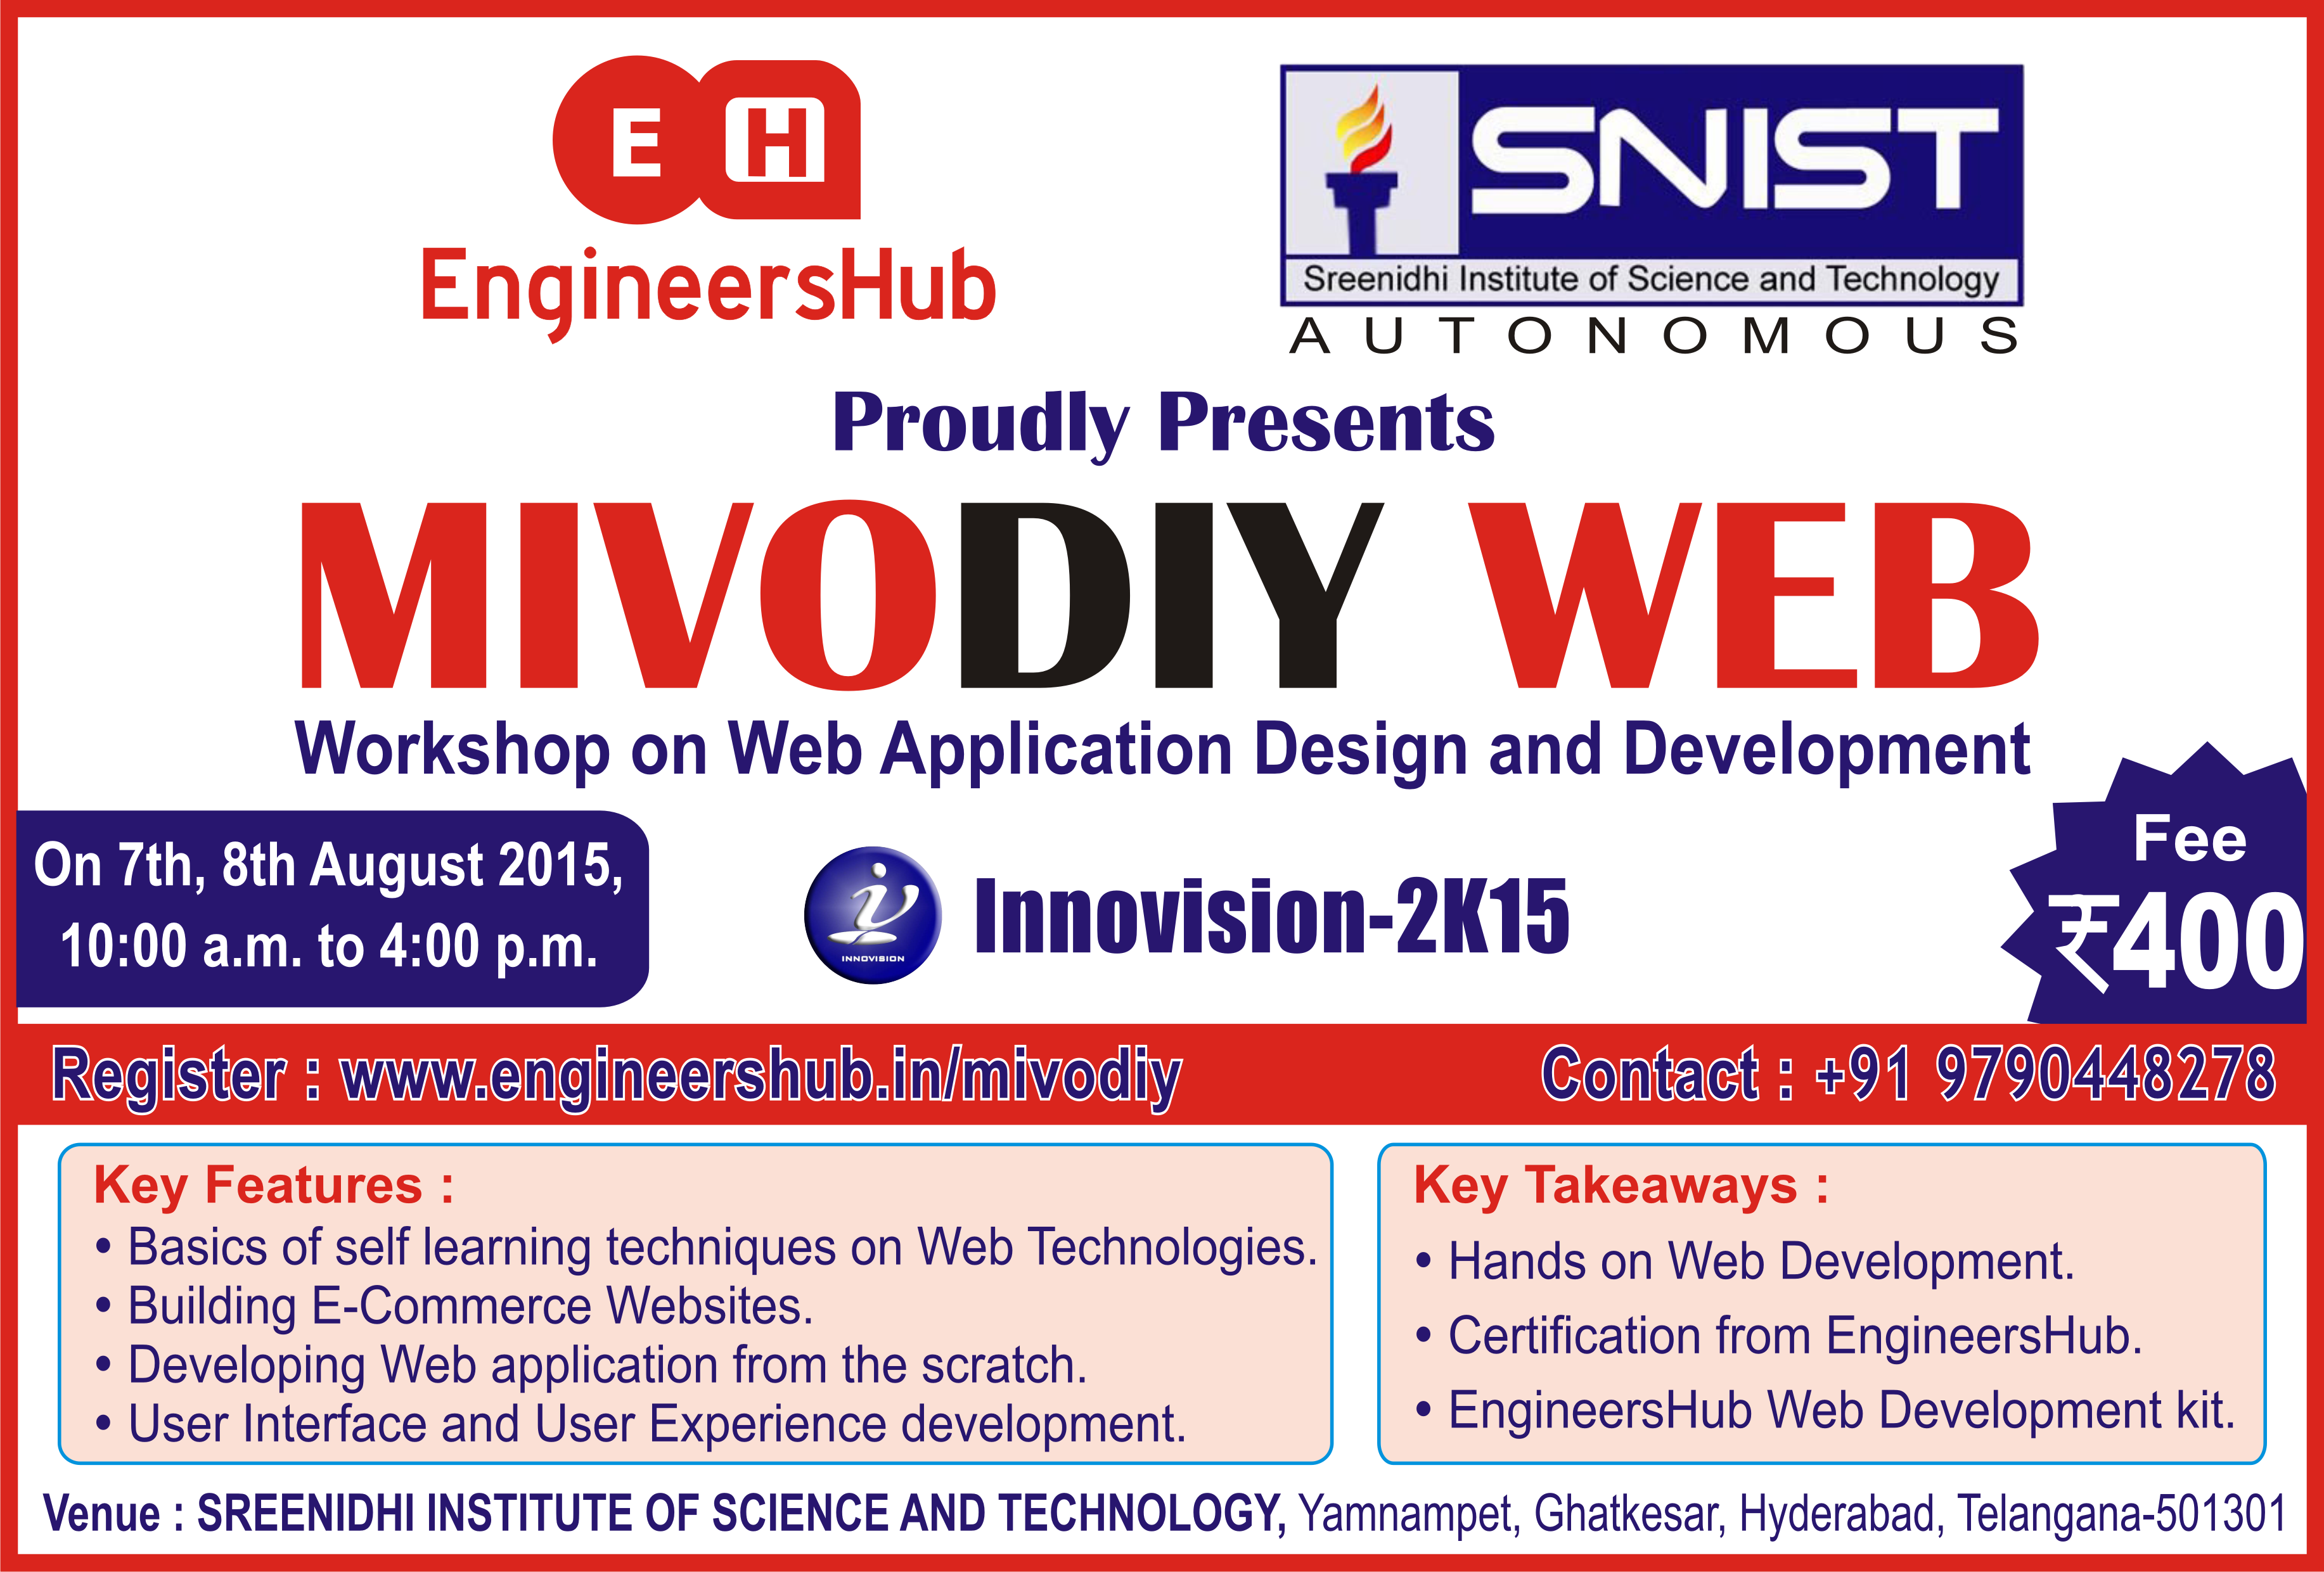 EngineersHub MivoDiy Workshop